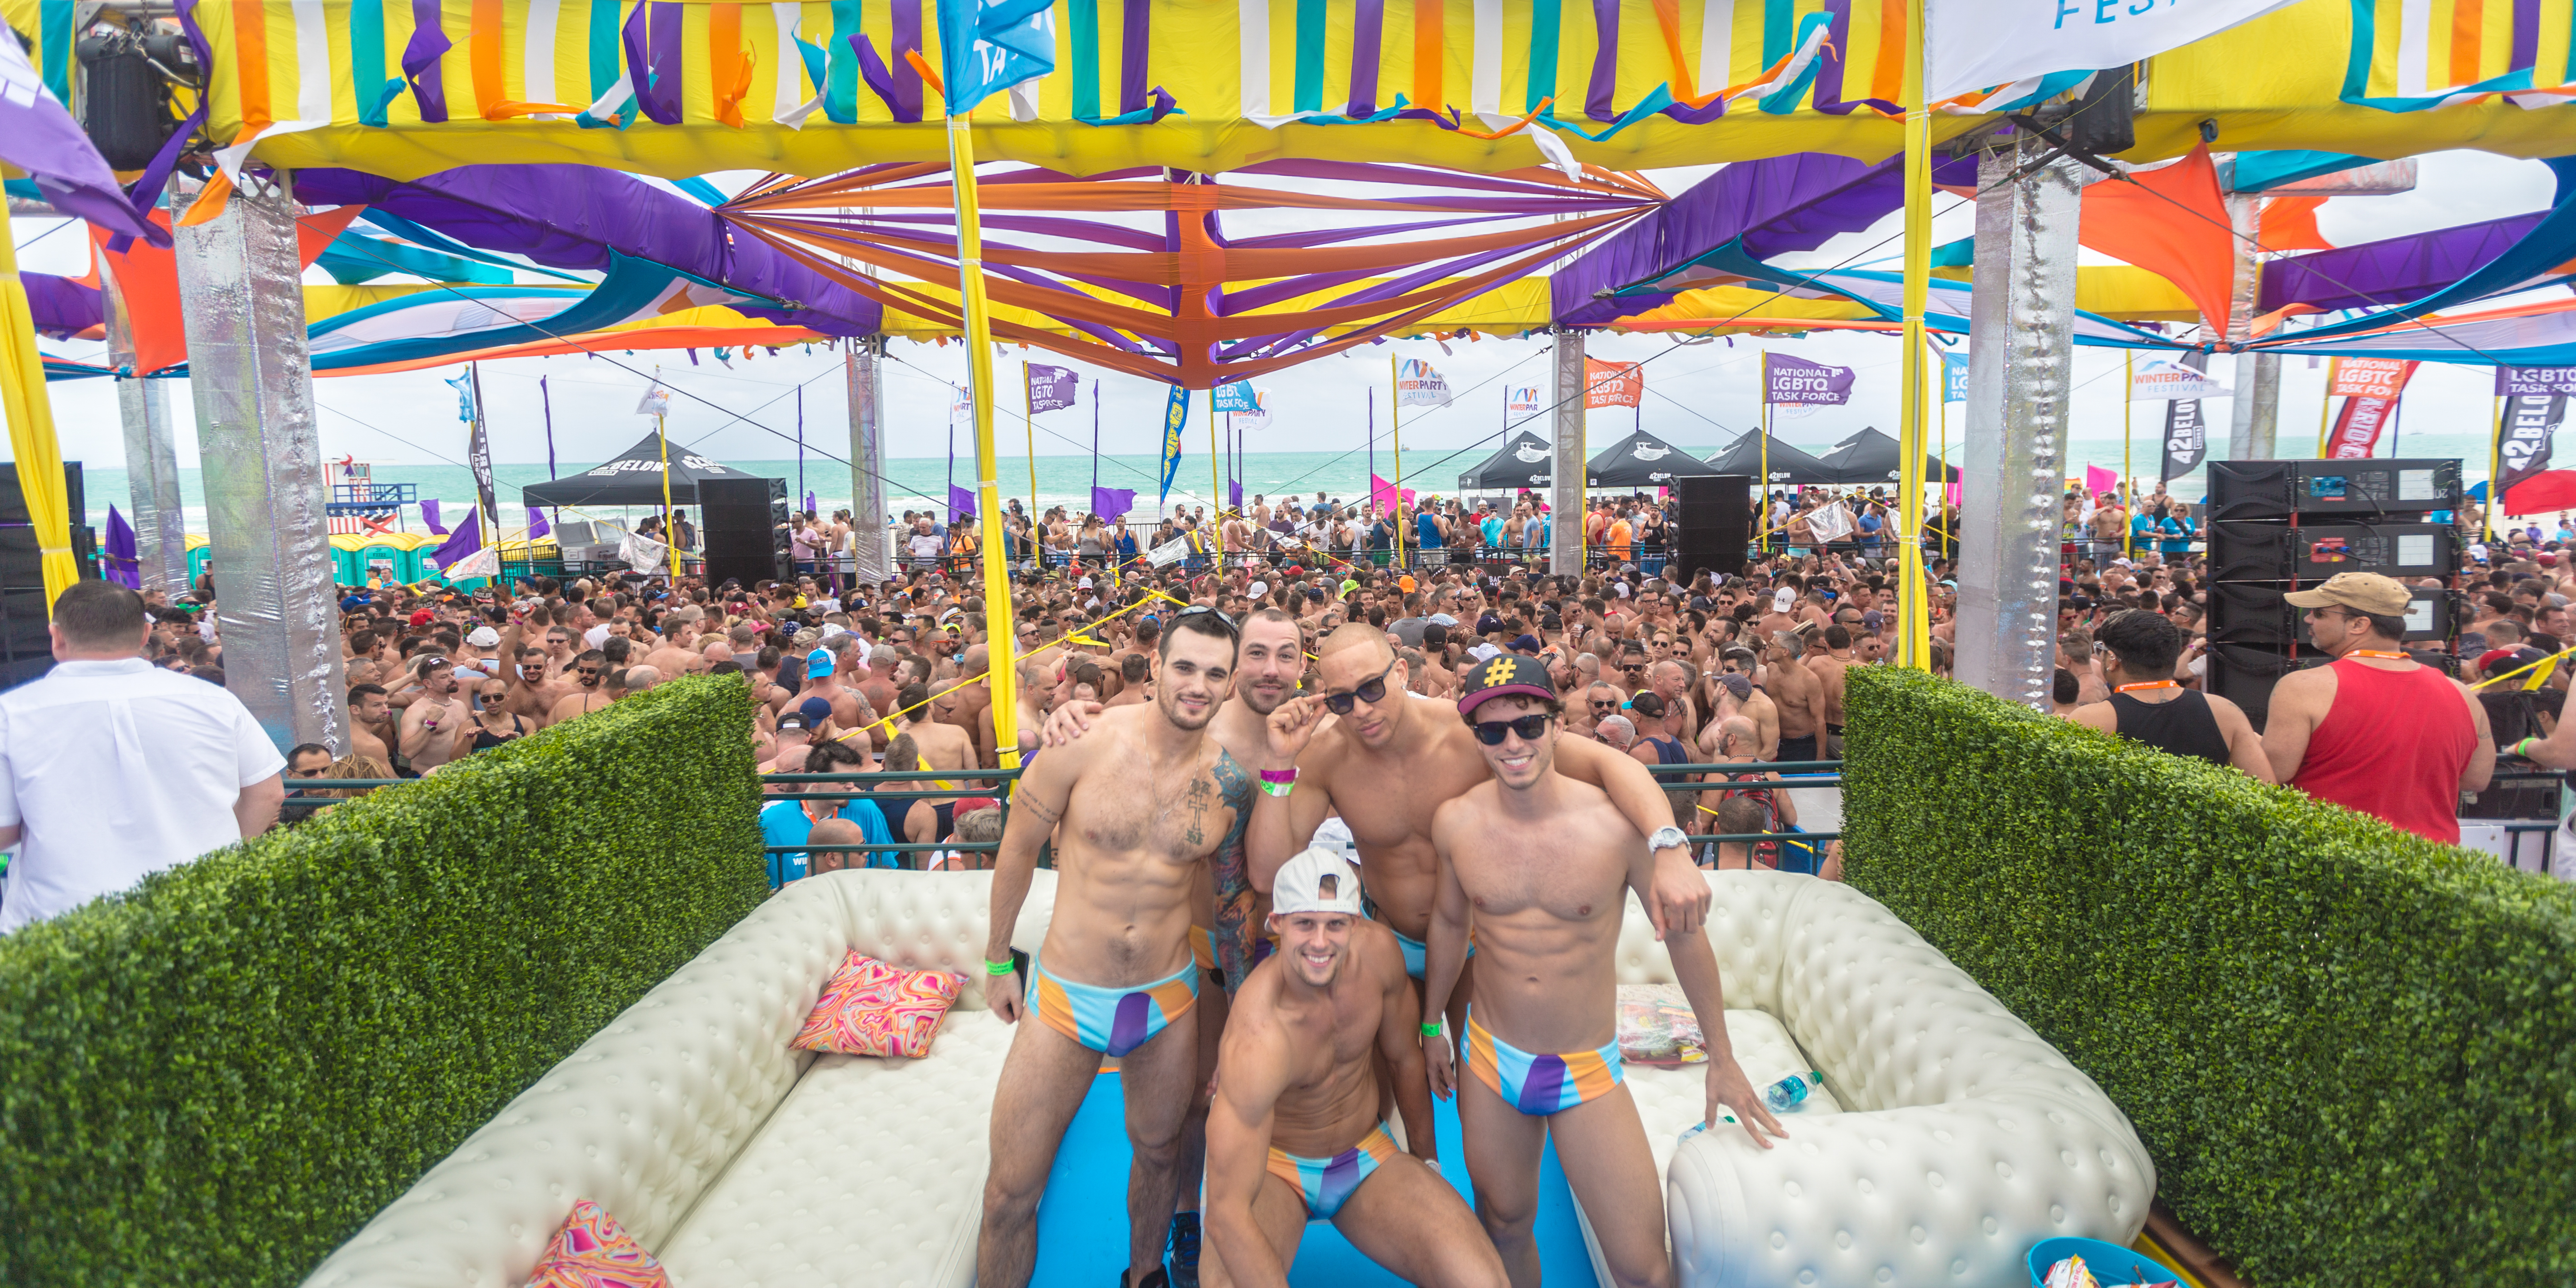 Enhance Your Beach Party Experience By Purchasing A Private Cabana Complete With Furniture Complimentary Drinks And Your Very Own Cabana Boy Or Girl